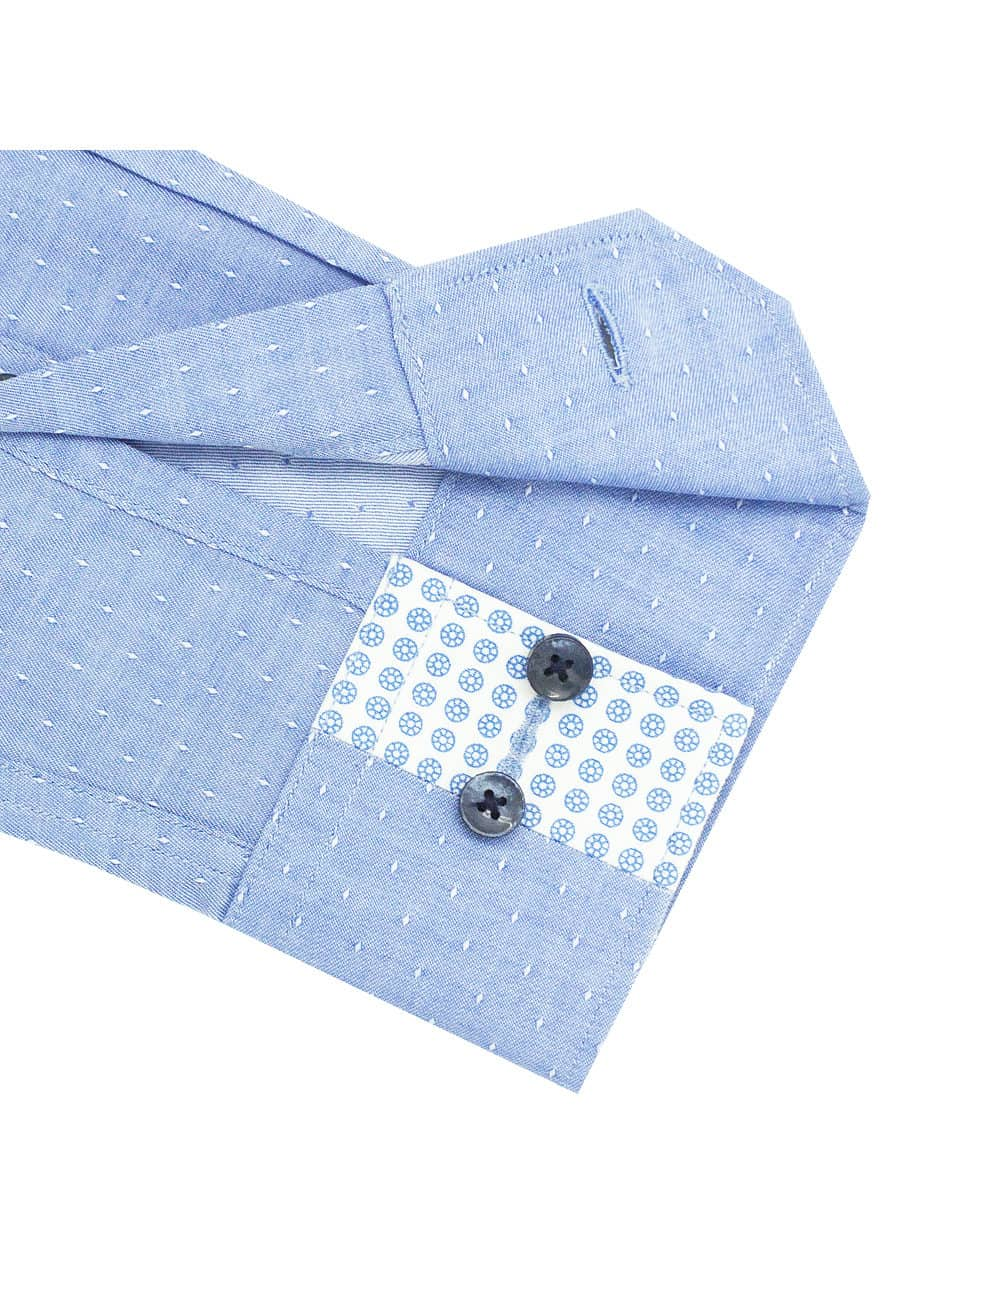 TF Blue with White Dots Cotton Blend Spill Resistant Long Sleeve Single Cuff Shirt TF2F6.15